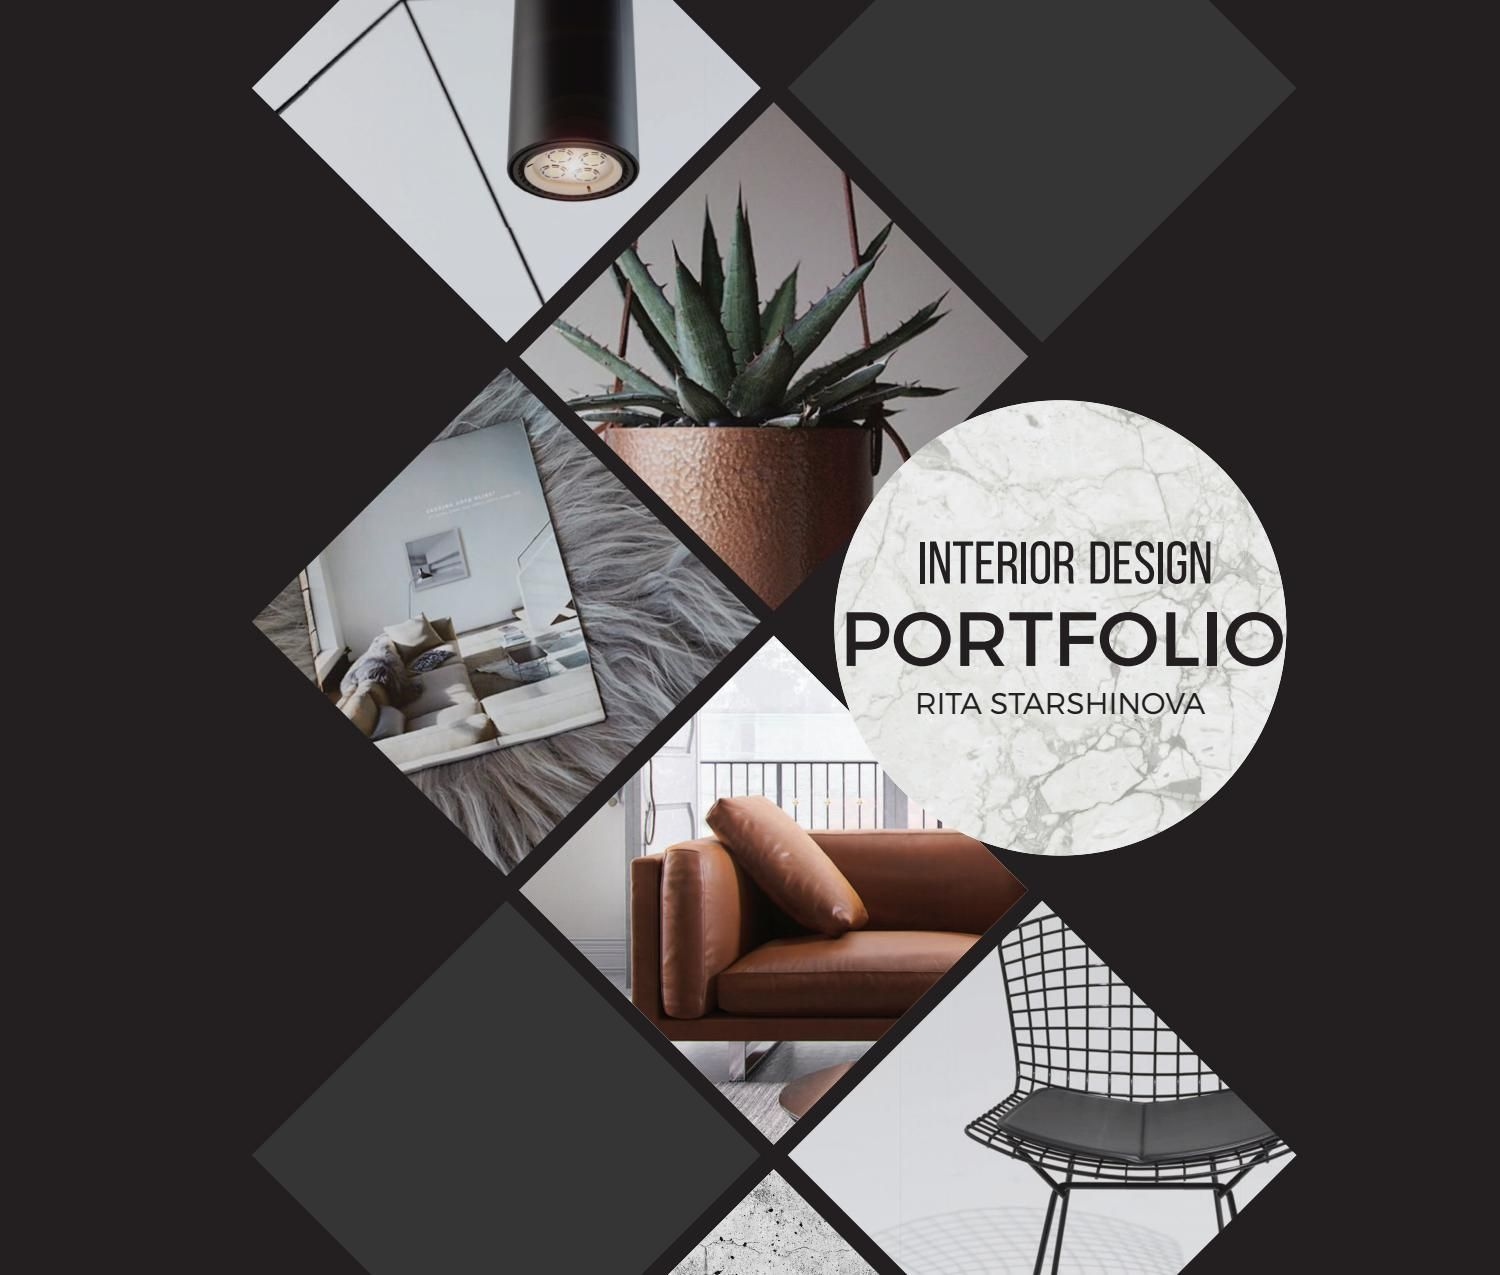 Rita starshinova portfolio interiors portfolio ideas for Interior design and decoration textbook